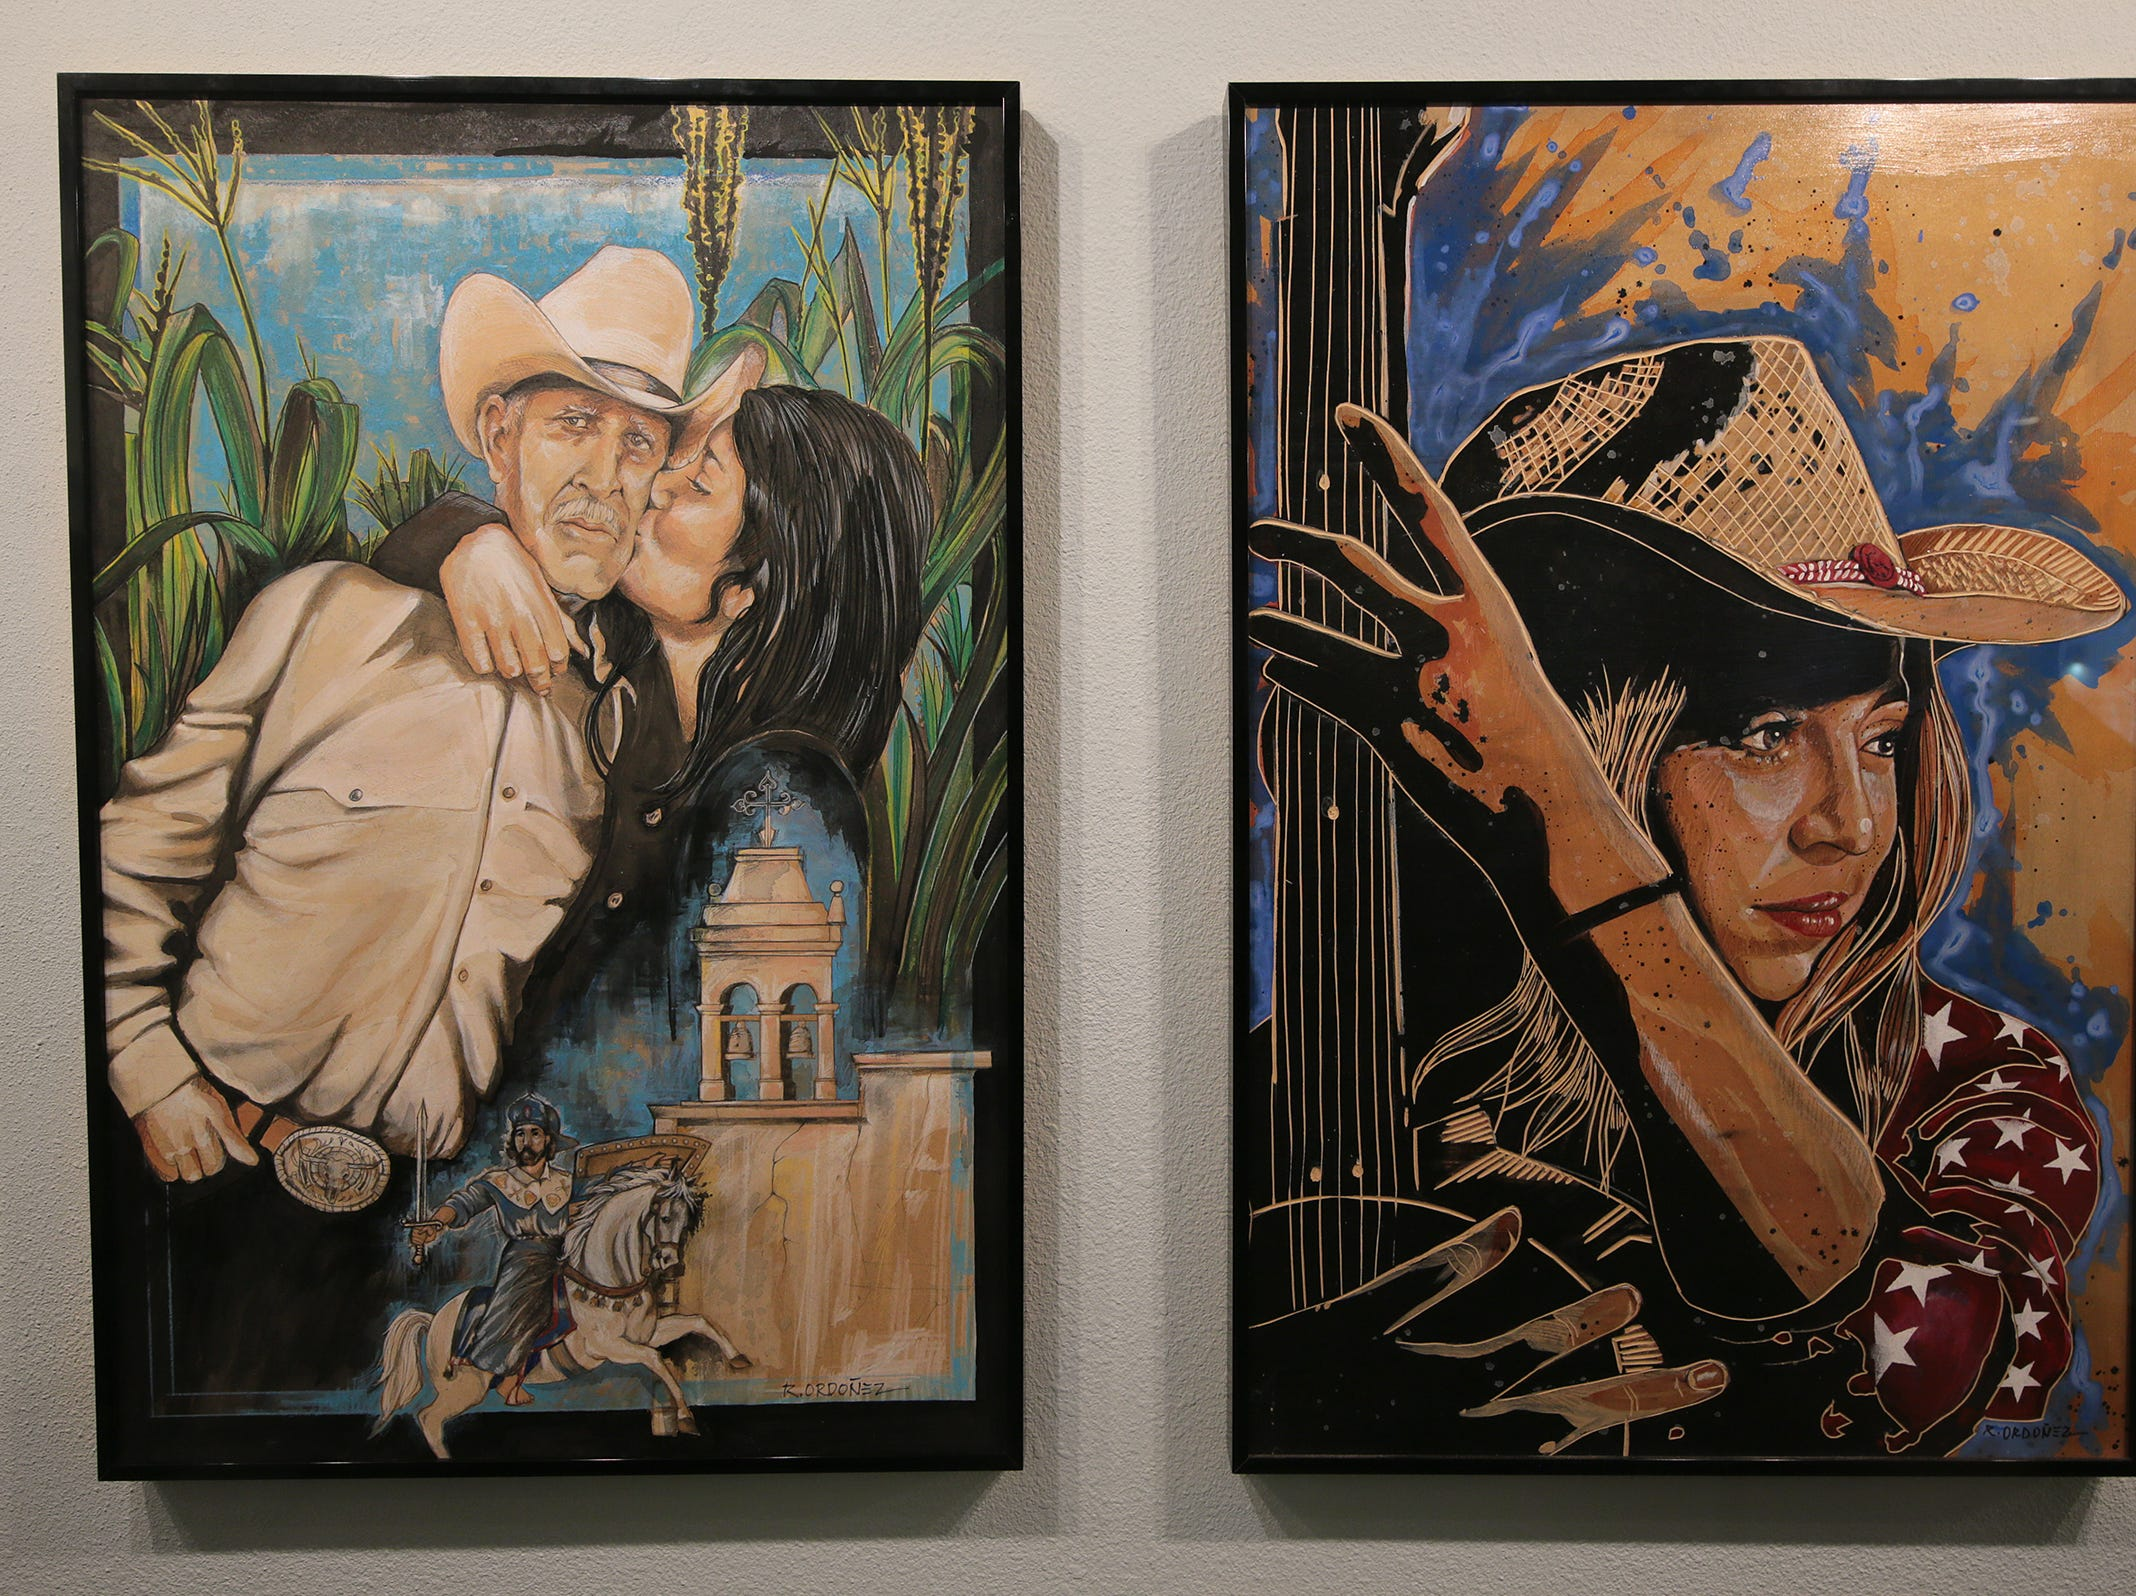 The Art Windows of El Paso at the El Paso International Airport held a ribbon cutting Friday, March 8, 2019, for an exhibit by artists Adrian Lopez and Ramiro Ordoñez.